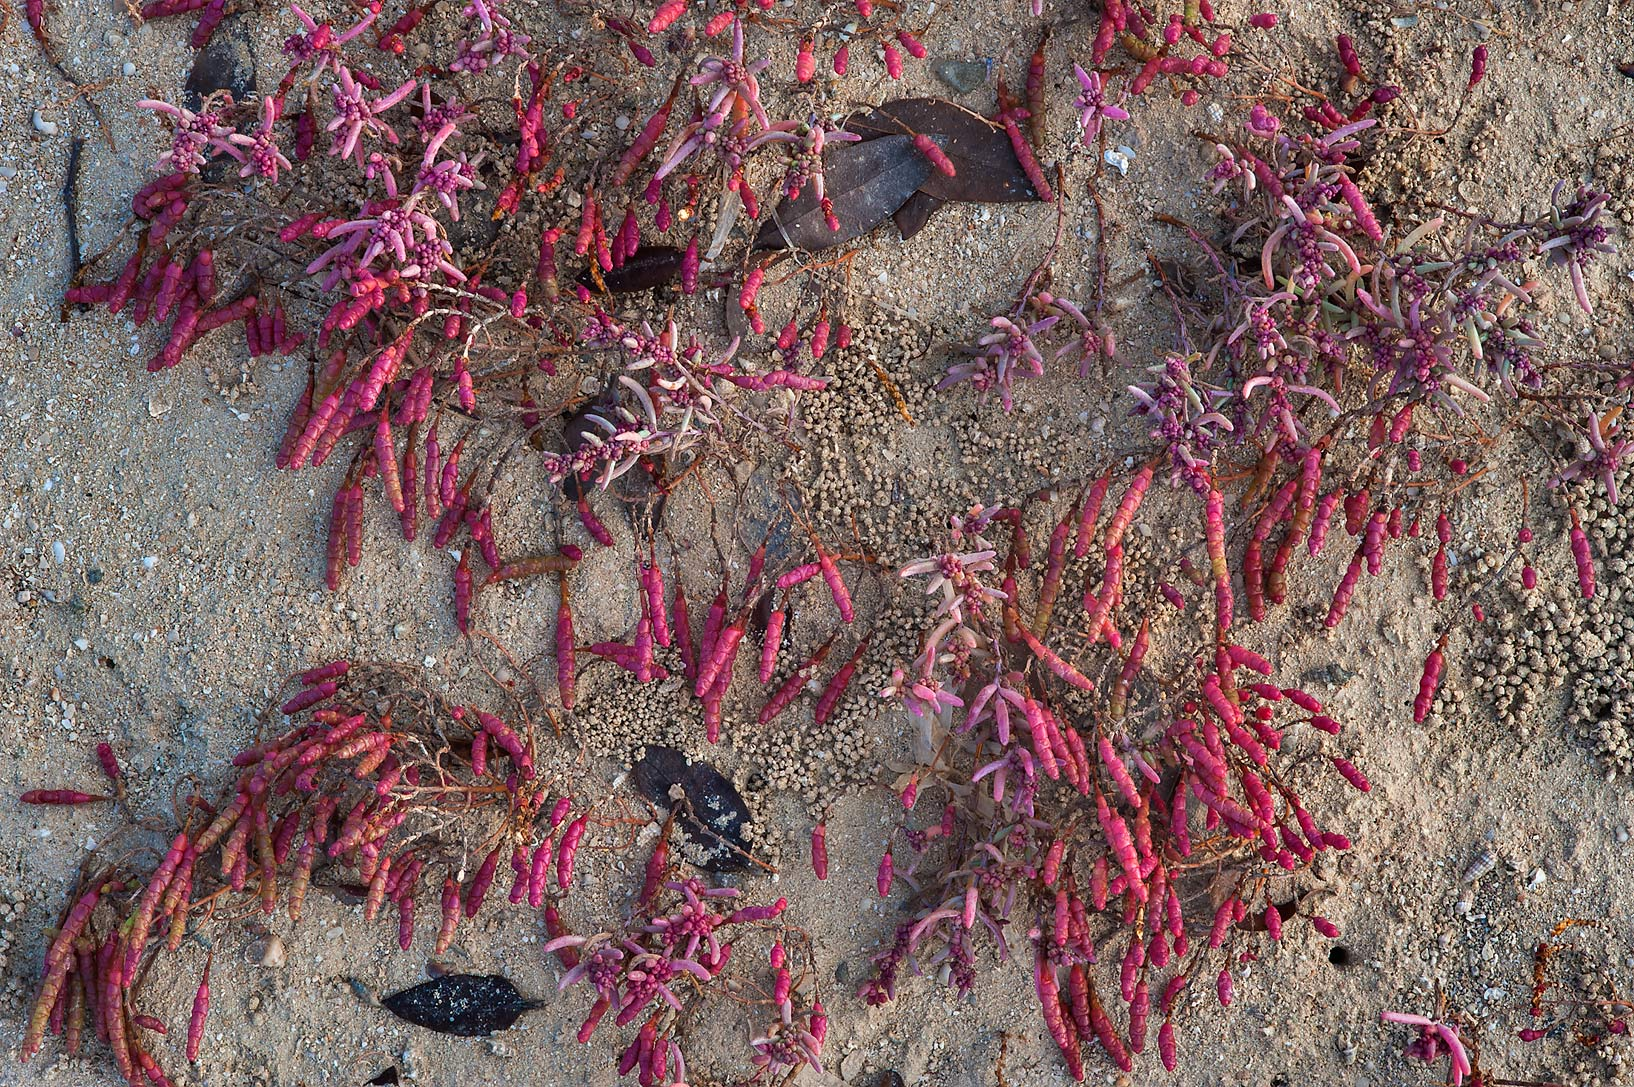 Fall colors of glasswort Salicornia europaea in...Jazirat Bin Ghanim). Al Khor, Qatar